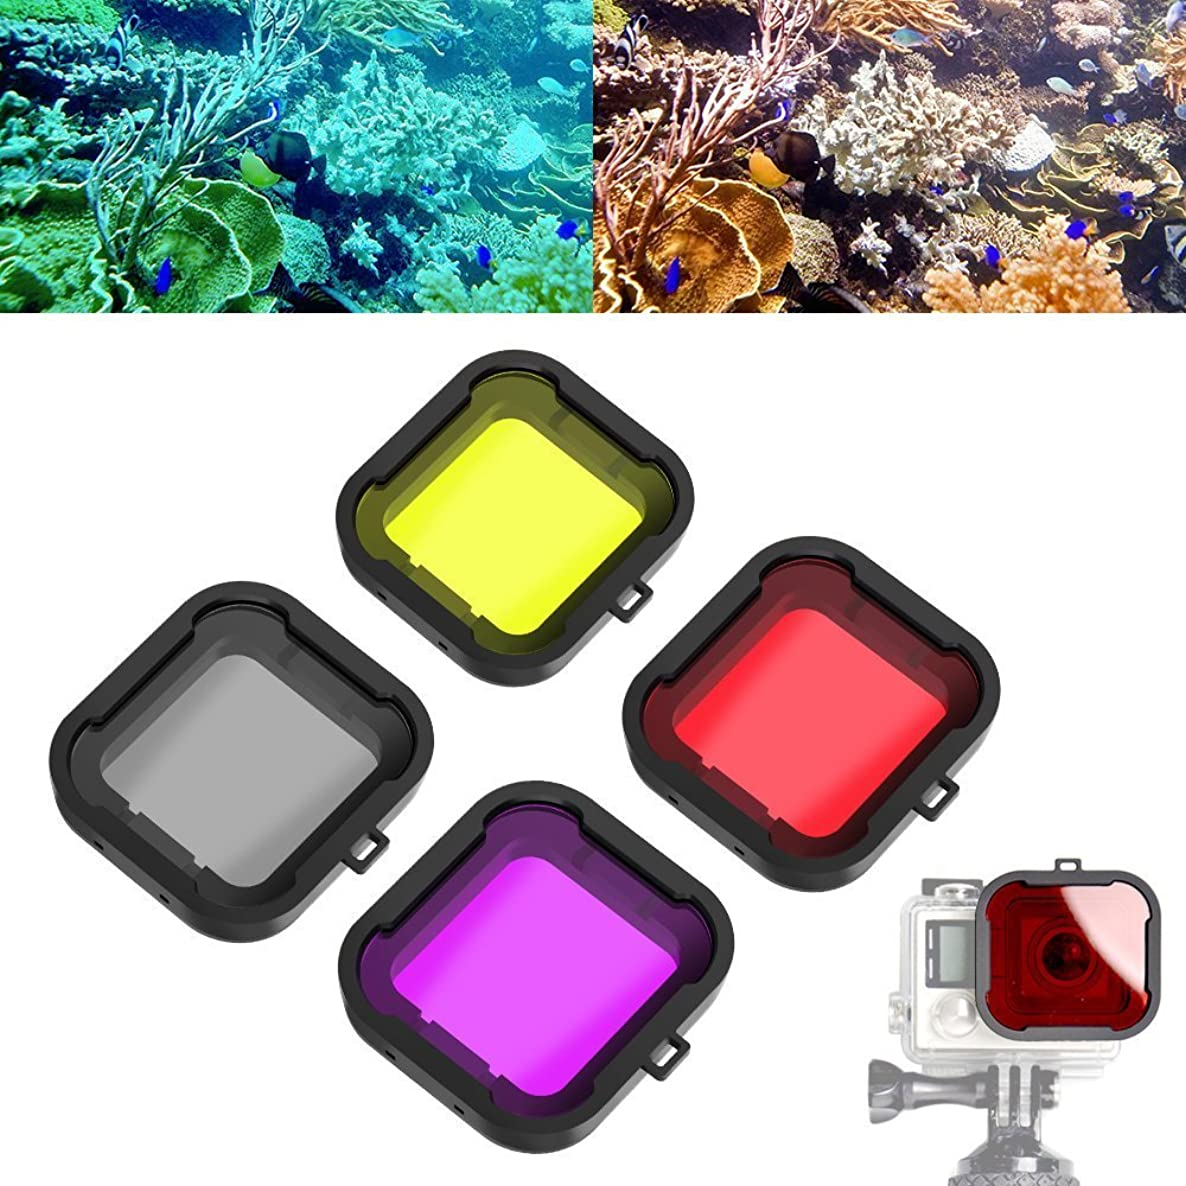 Williamcr 4 in 1 Water Sport Floating Dive Filter (Red + Yellow + Grey + Purple) For GoPro Hero 3+ 4 Standard Housing Color Correction Accessories with ABS Plastic frame, Professional Lens Filter oyoo5337746532